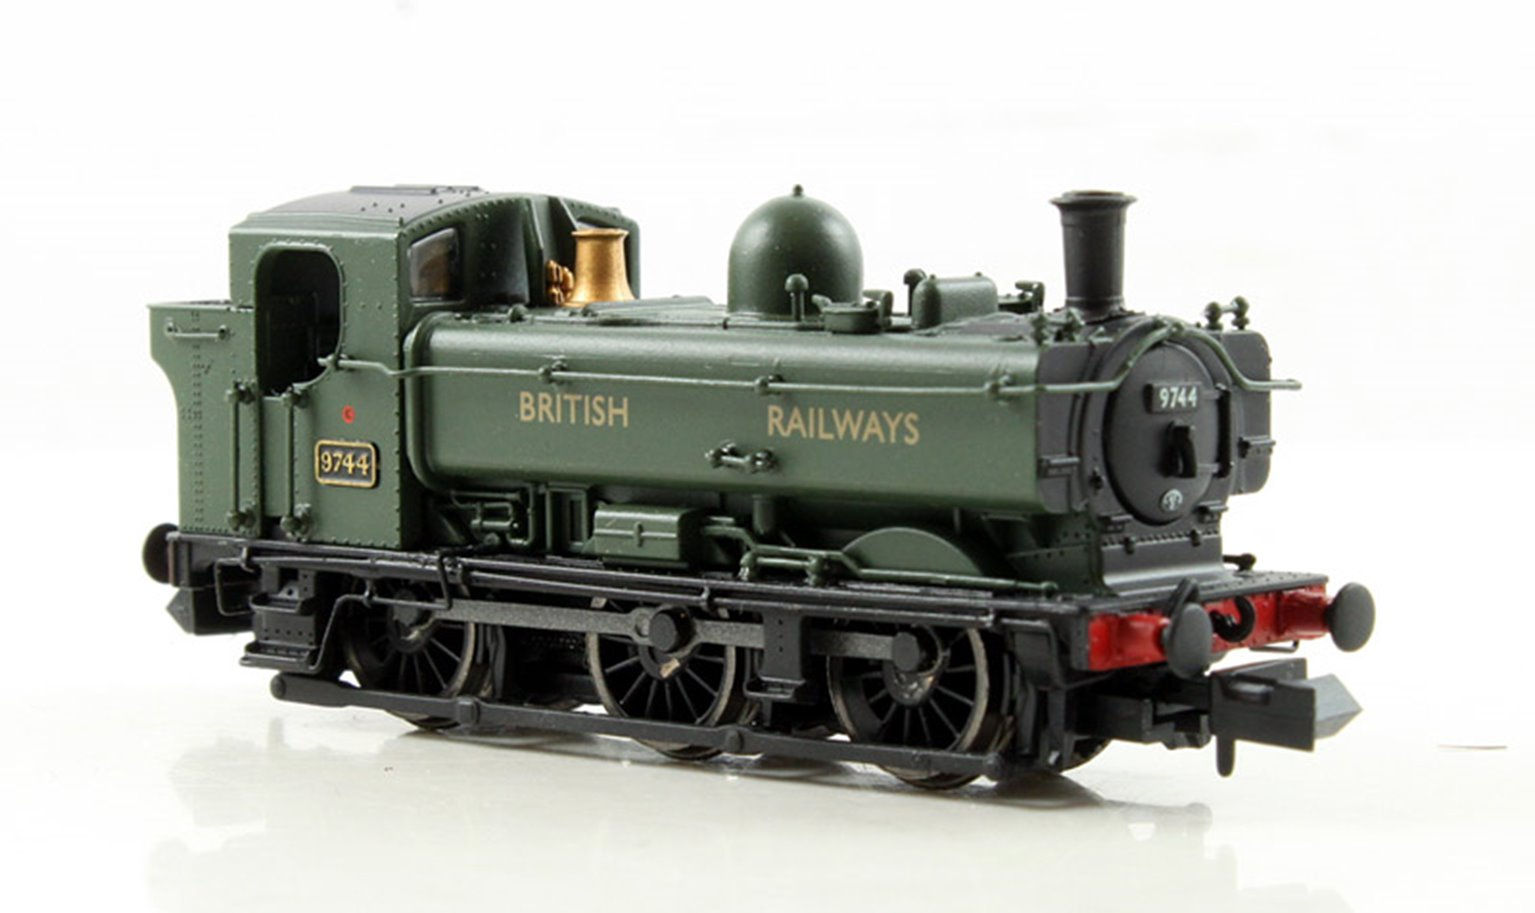 Class 57xx Pannier 0-6-0 #9744 In 'British Railways' Green livery